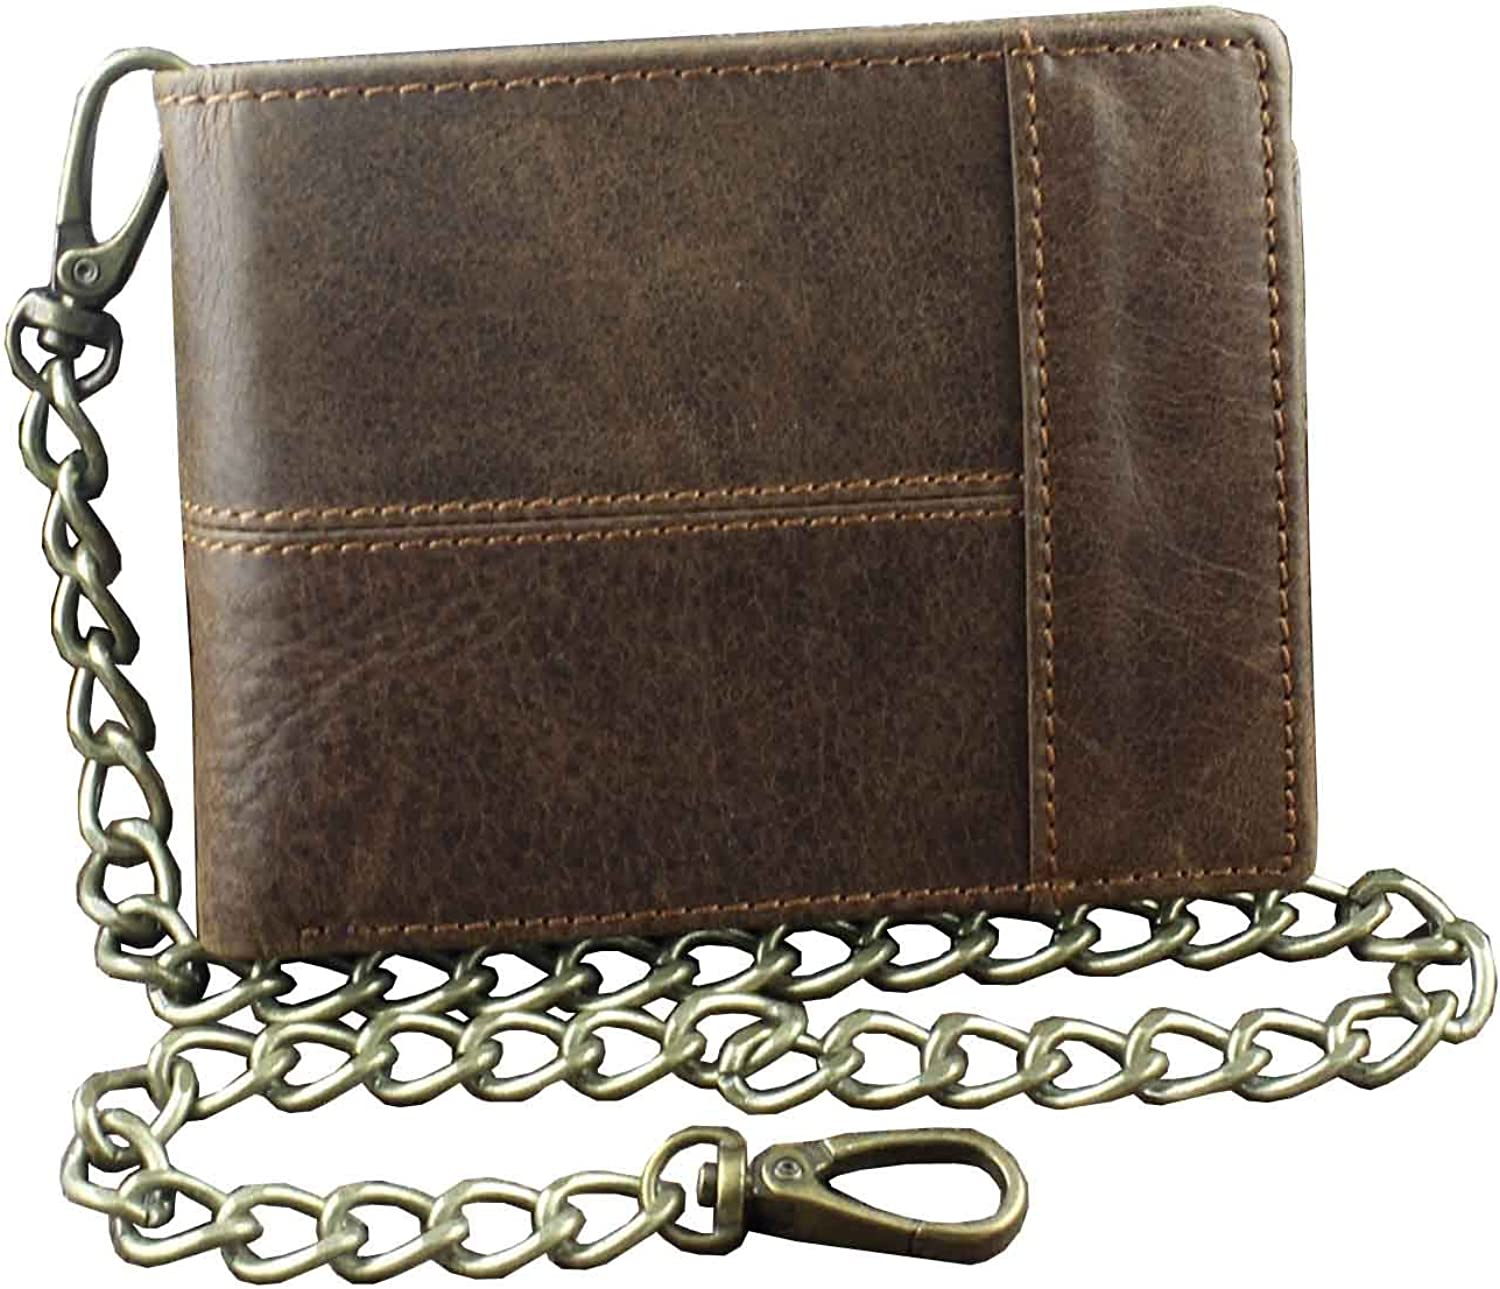 New Vintage Brown Leather Wallet With Chain Mens Bifold/Many Card Holder